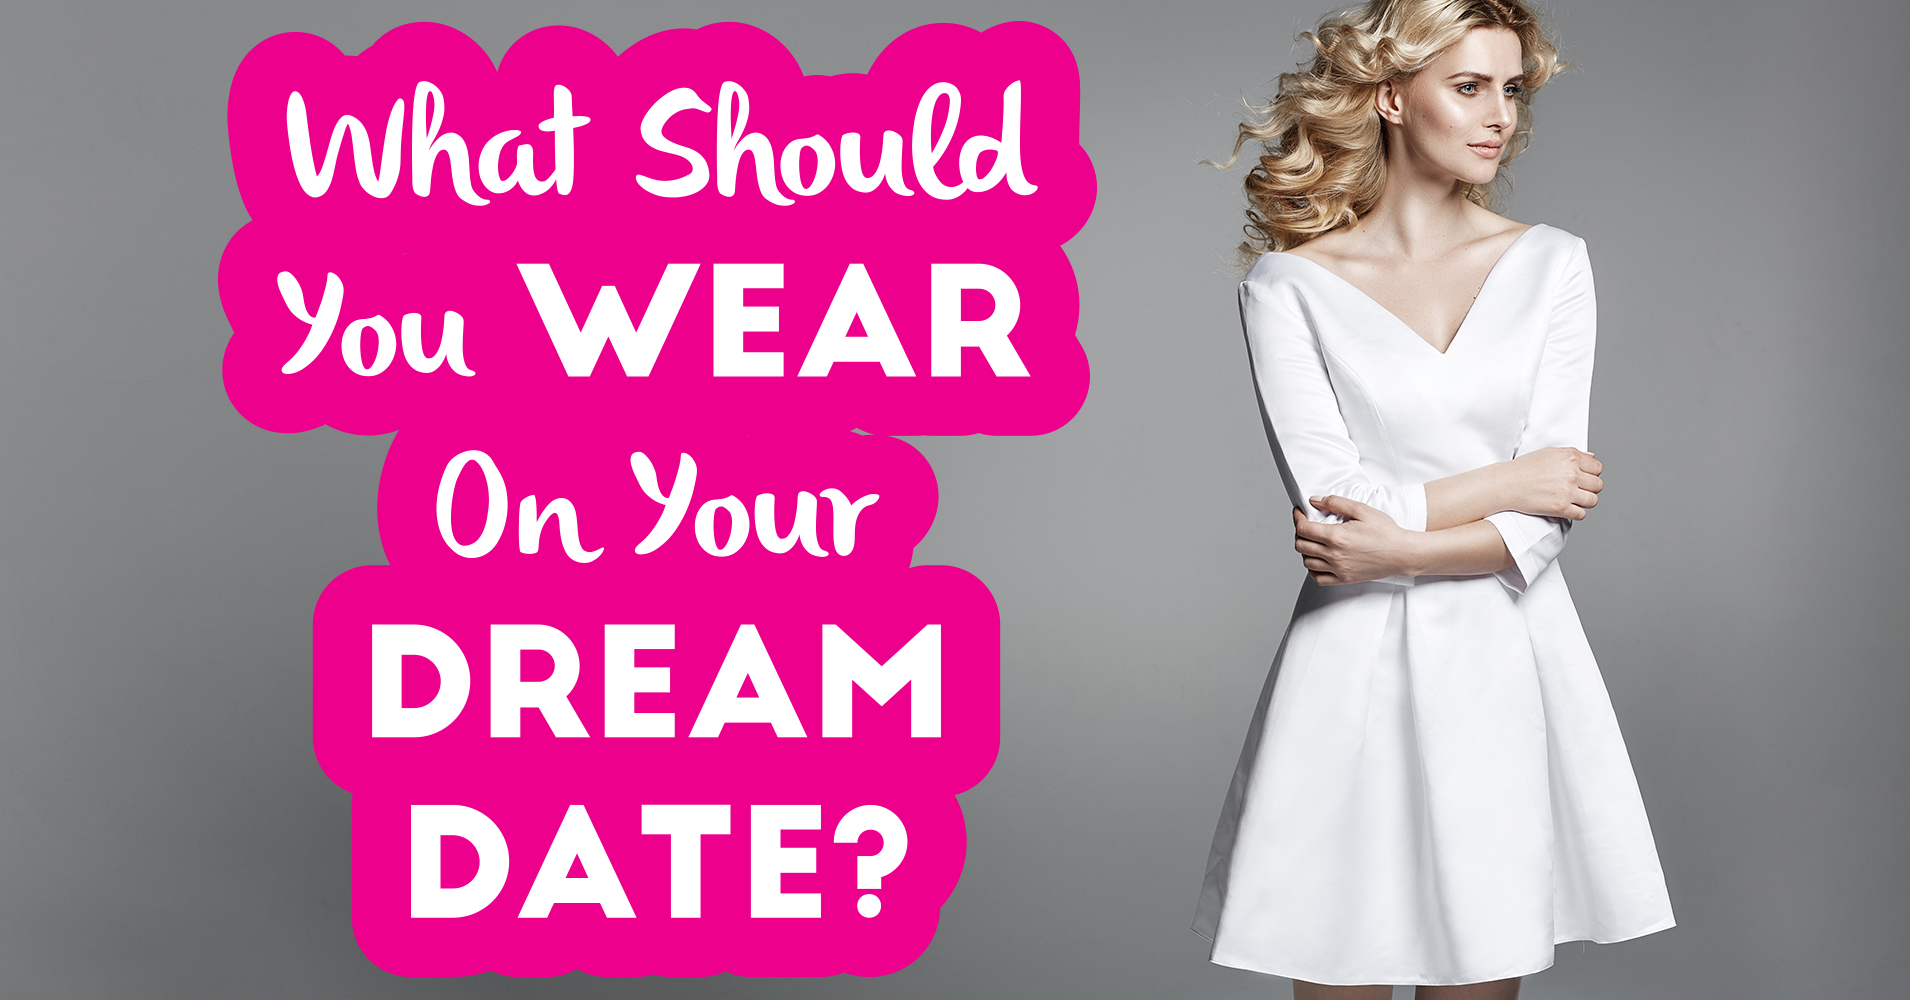 What should a girl wear on a date